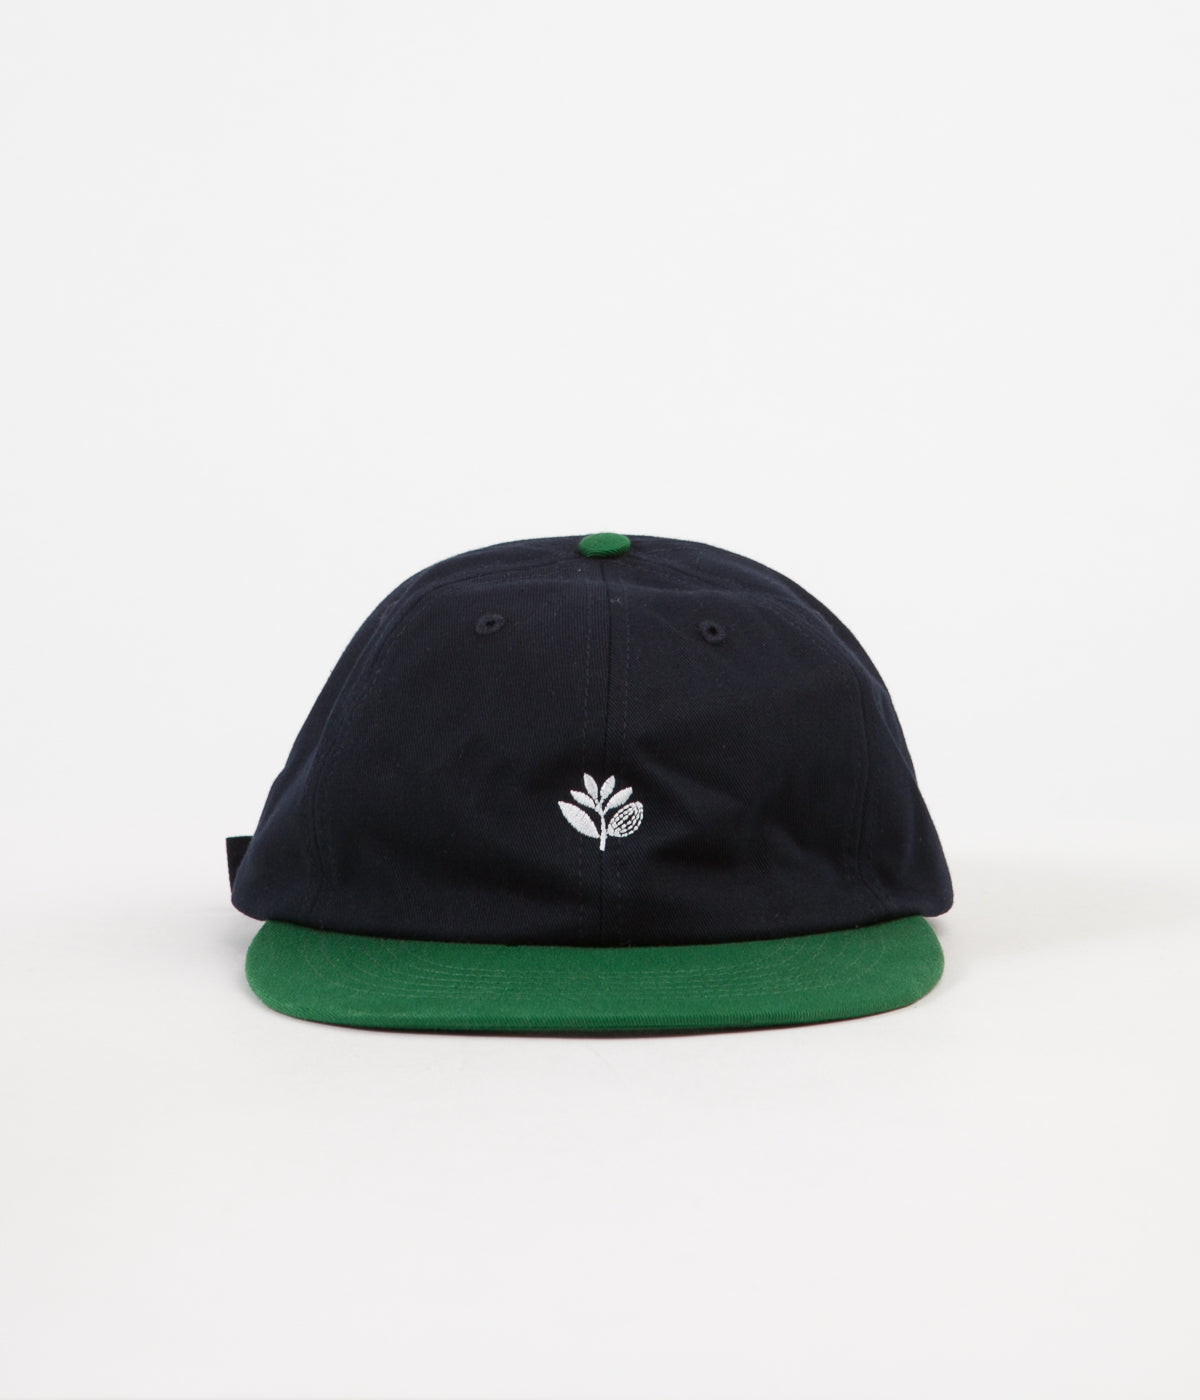 Magenta 6 Panel Cap - Navy / Green